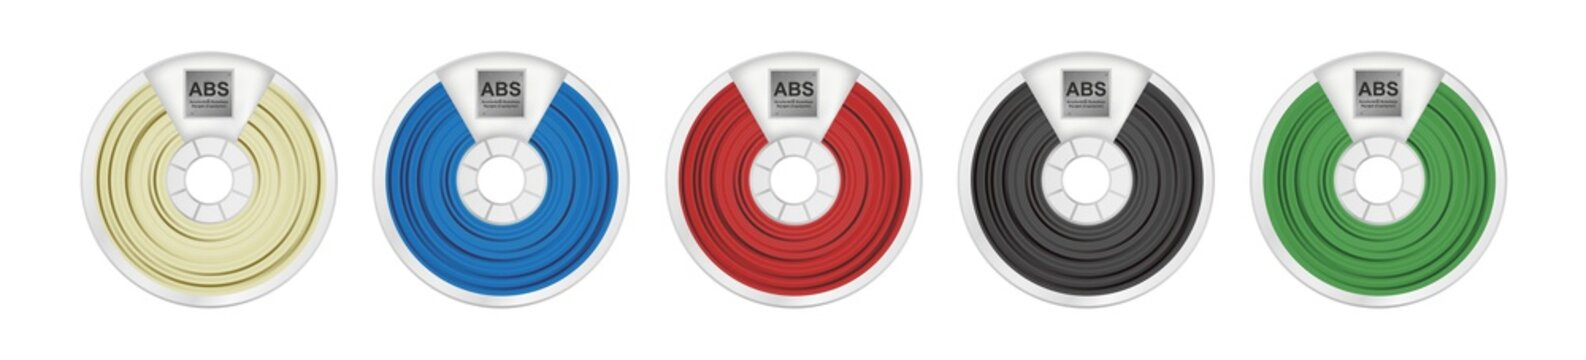 Vector set of five abs filaments for 3D printing wounded on the spool. Plastic material acrylonitrile butadiene styrene in several color variants – natural white, blue, red, black and green isolated.